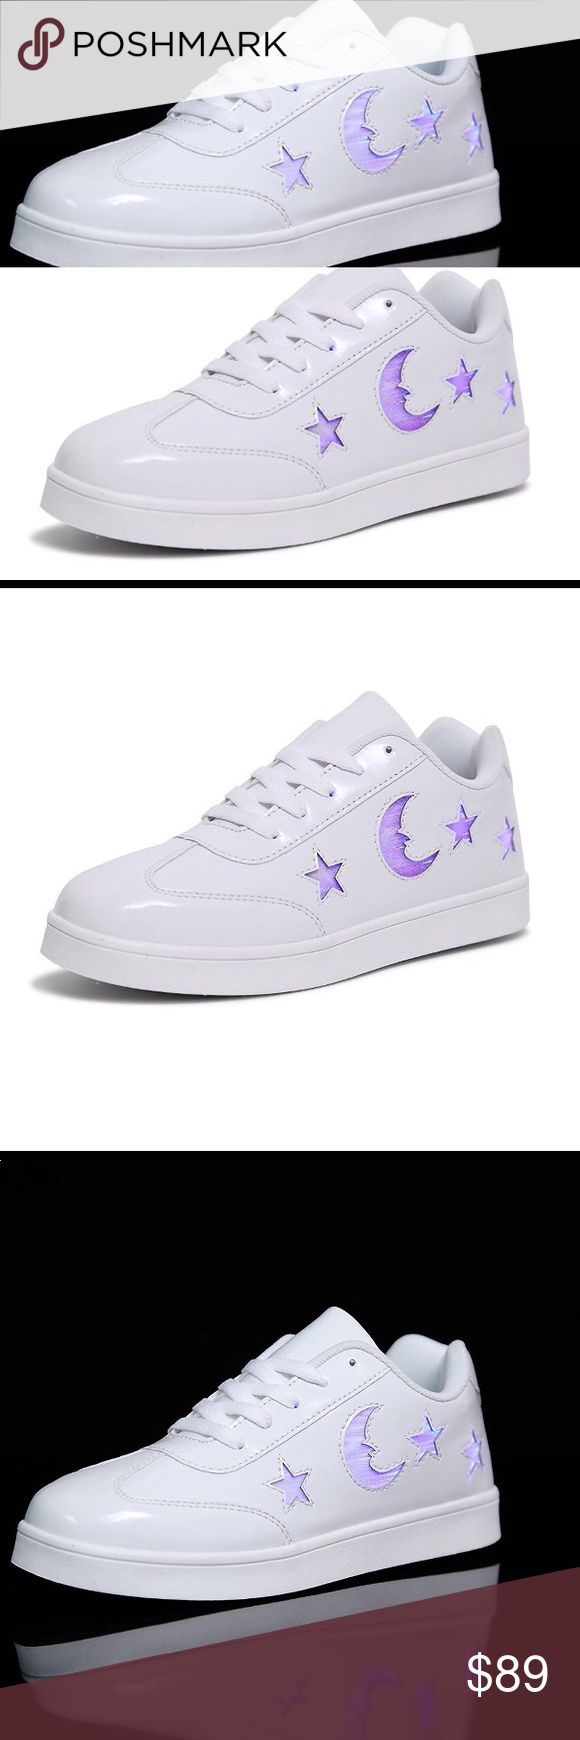 LED Light Up Shoes for little kid 2.5 m pnk/purp PRICE FIRM !KIDS WILL LOVE ! New in box white and purple  LED Light Up Shoes for little kid 2.5 m little kid with USB Charging Flashing Luminous Casual Sneakers ny Husksware. Retail price $129.00Fully charge both shoes in 2-3 hoursNo complicated wiring, no short circuits, just impressive luminous steps for up to 9 hours! CHARGING CABLE and the REMOTE CONTROL come with  Gently scrub dirt and dust off the surface and avoid immersing in water to…